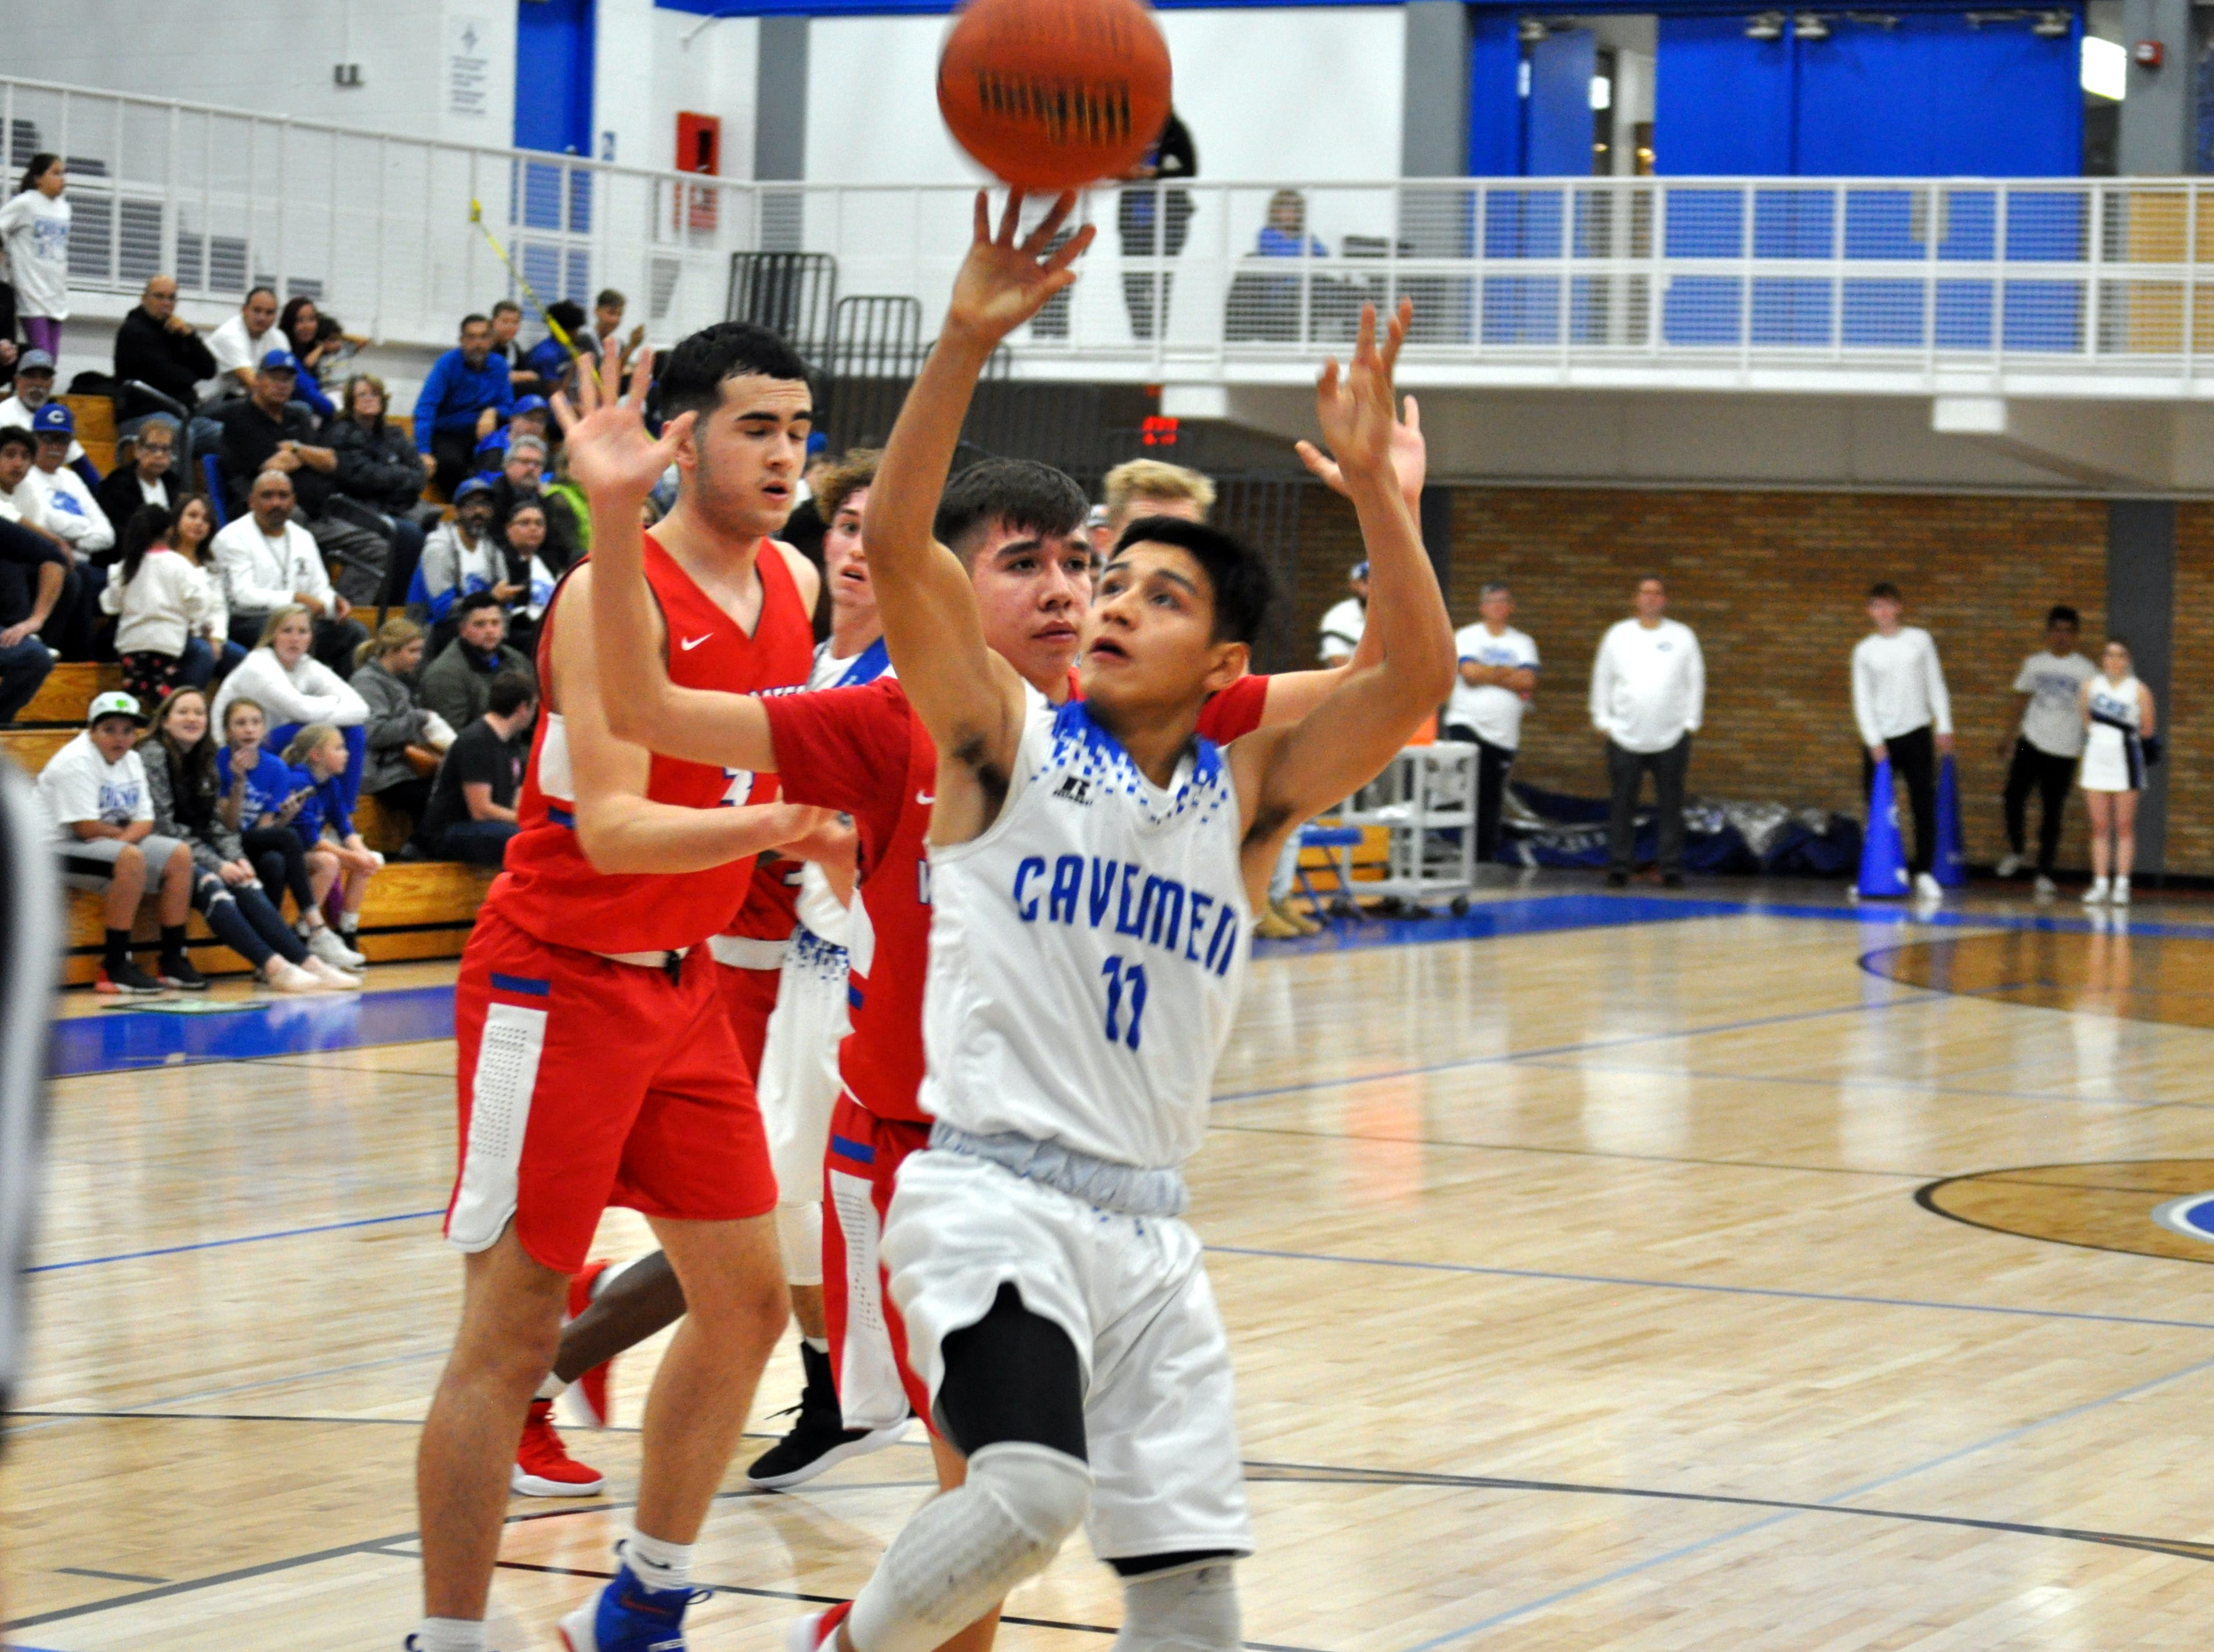 Edward Cano (11) gets off a shot during Friday's game against West Mesa.